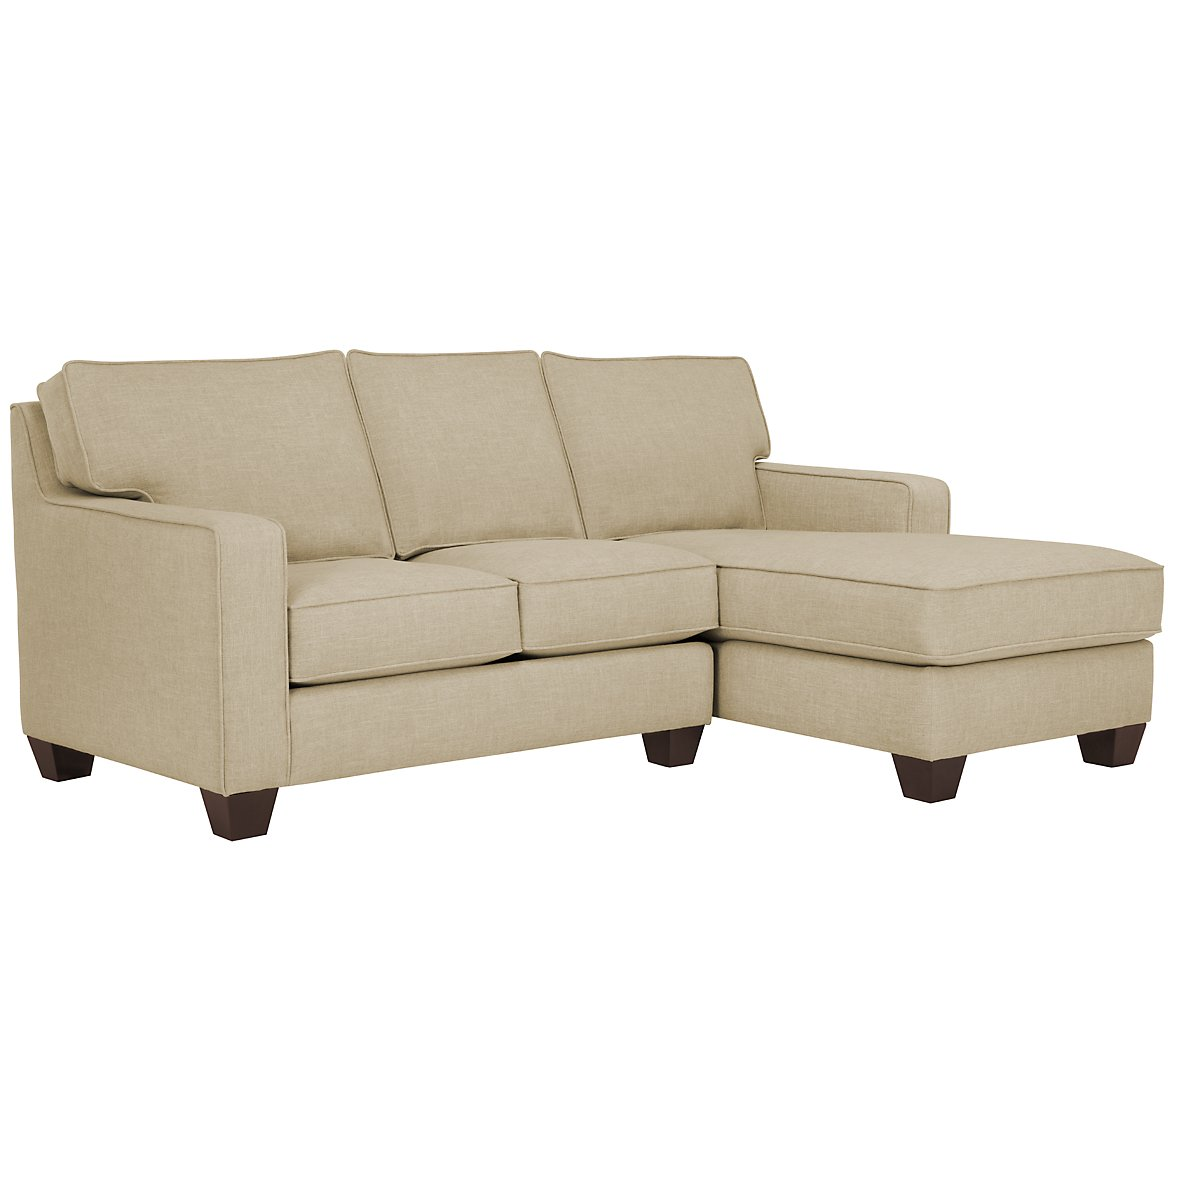 City furniture york beige fabric small right chaise sectional for Beige sectional with chaise